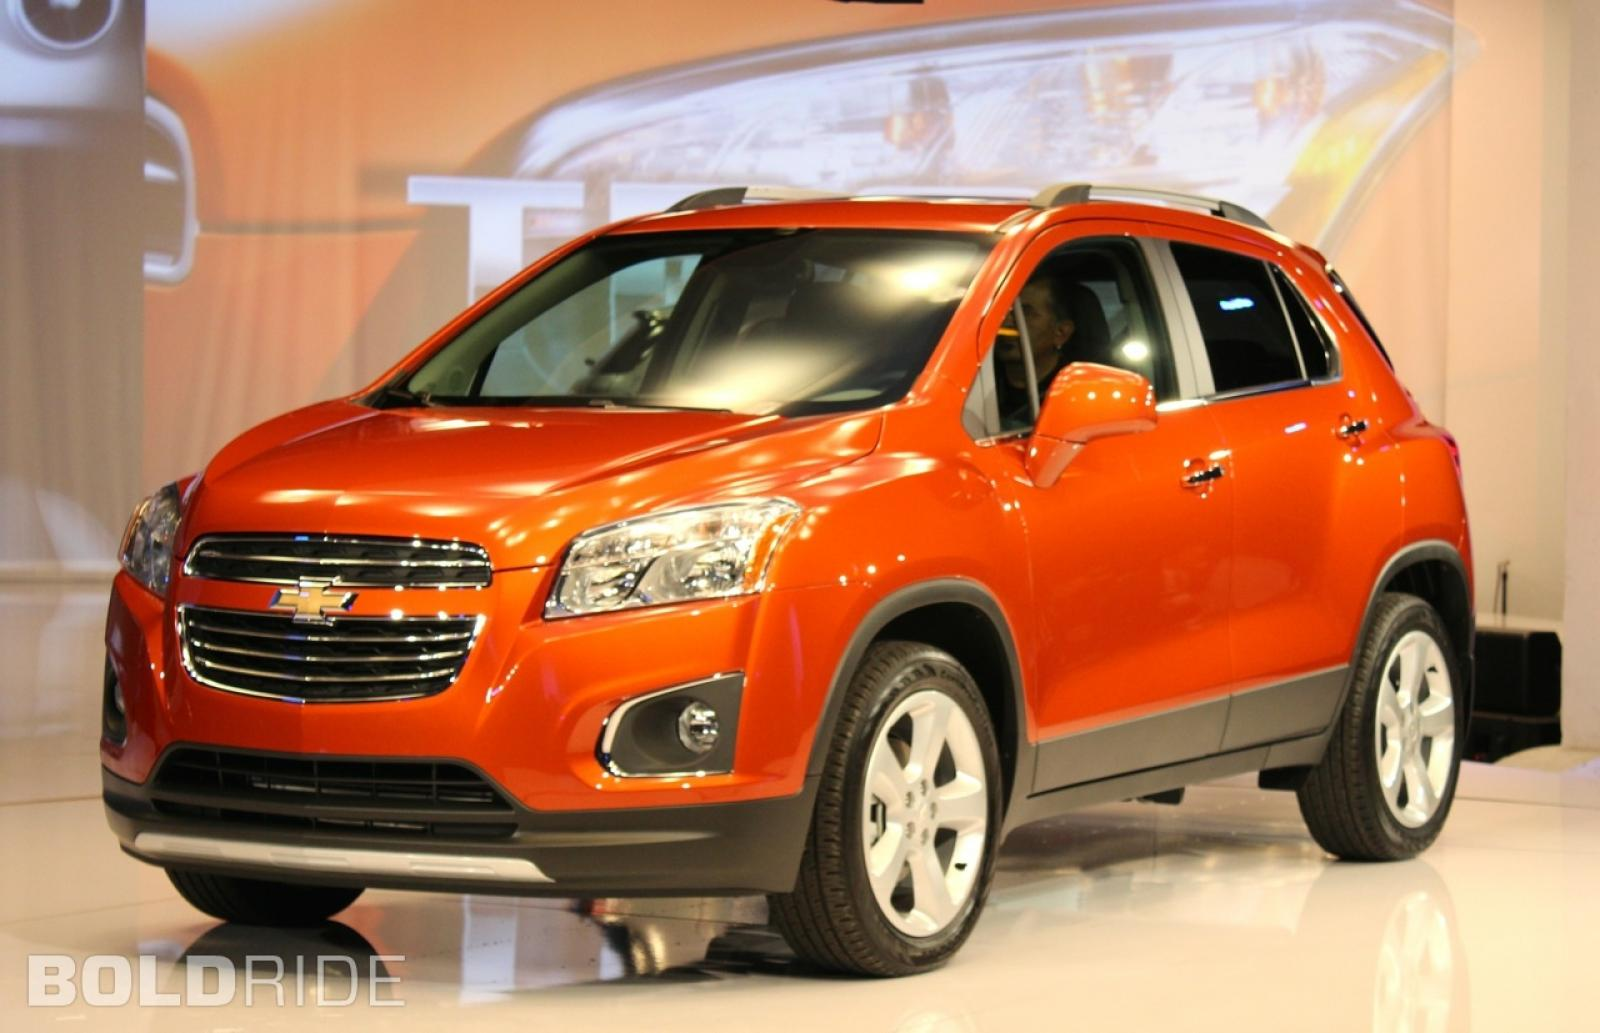 2015 chevrolet trax information and photos zombiedrive. Black Bedroom Furniture Sets. Home Design Ideas